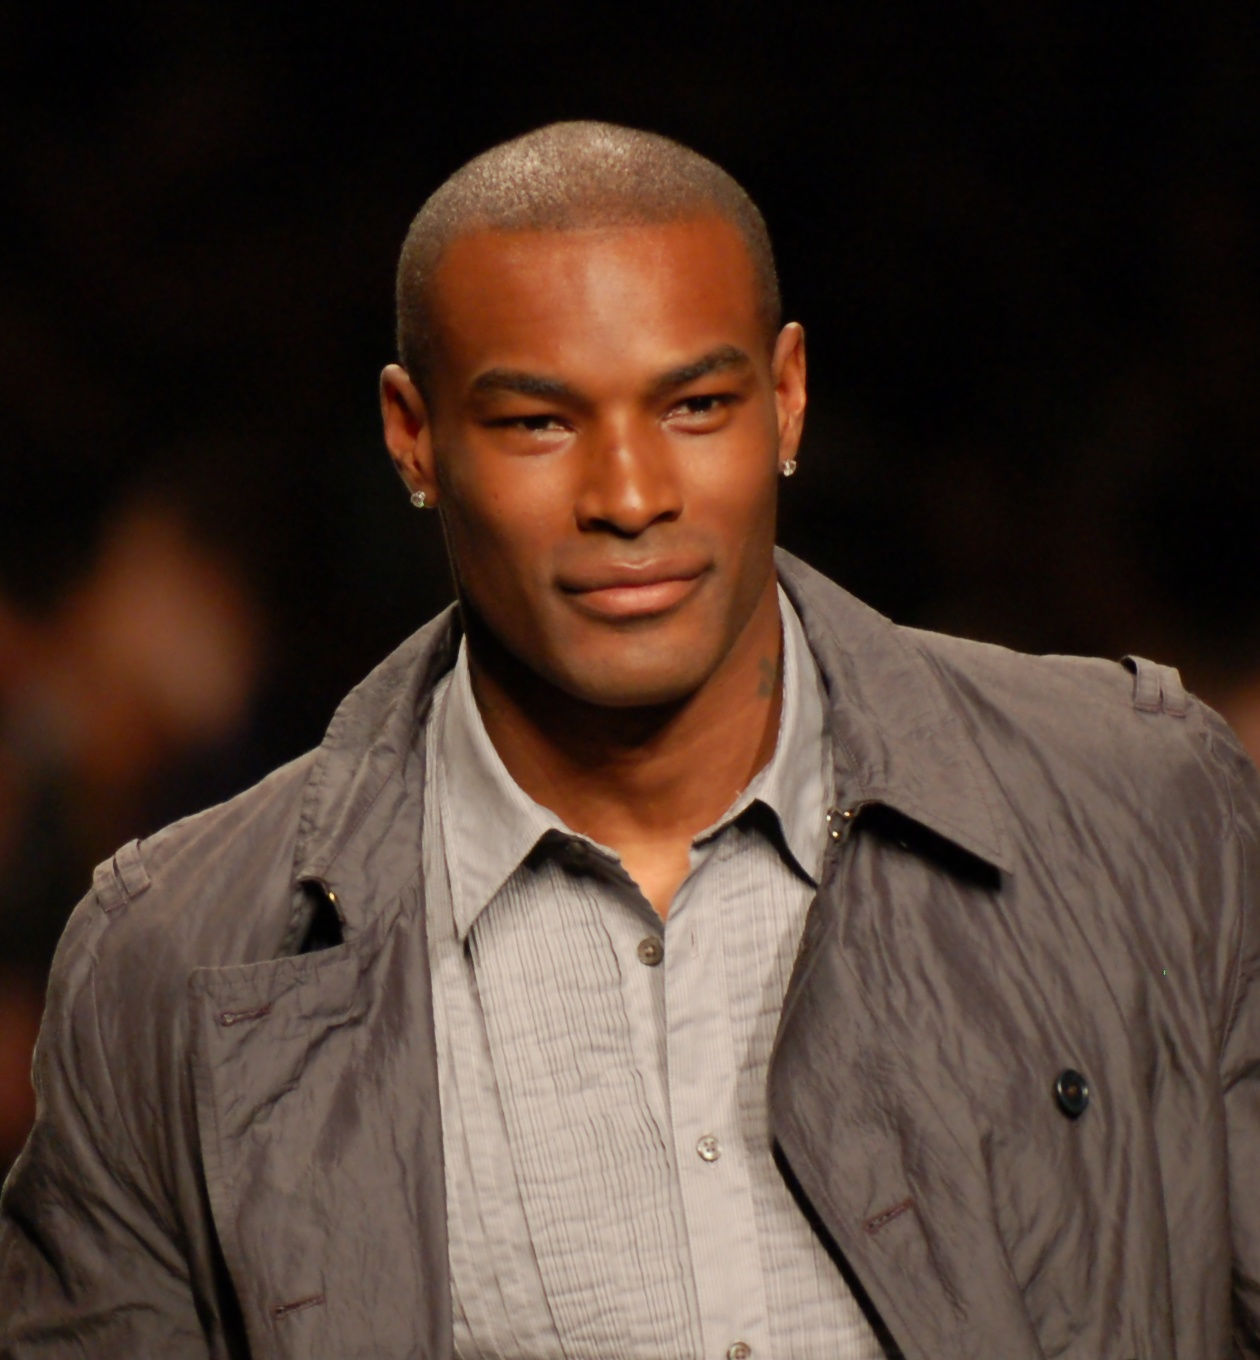 Photo of Tyson Beckford: American actor and model